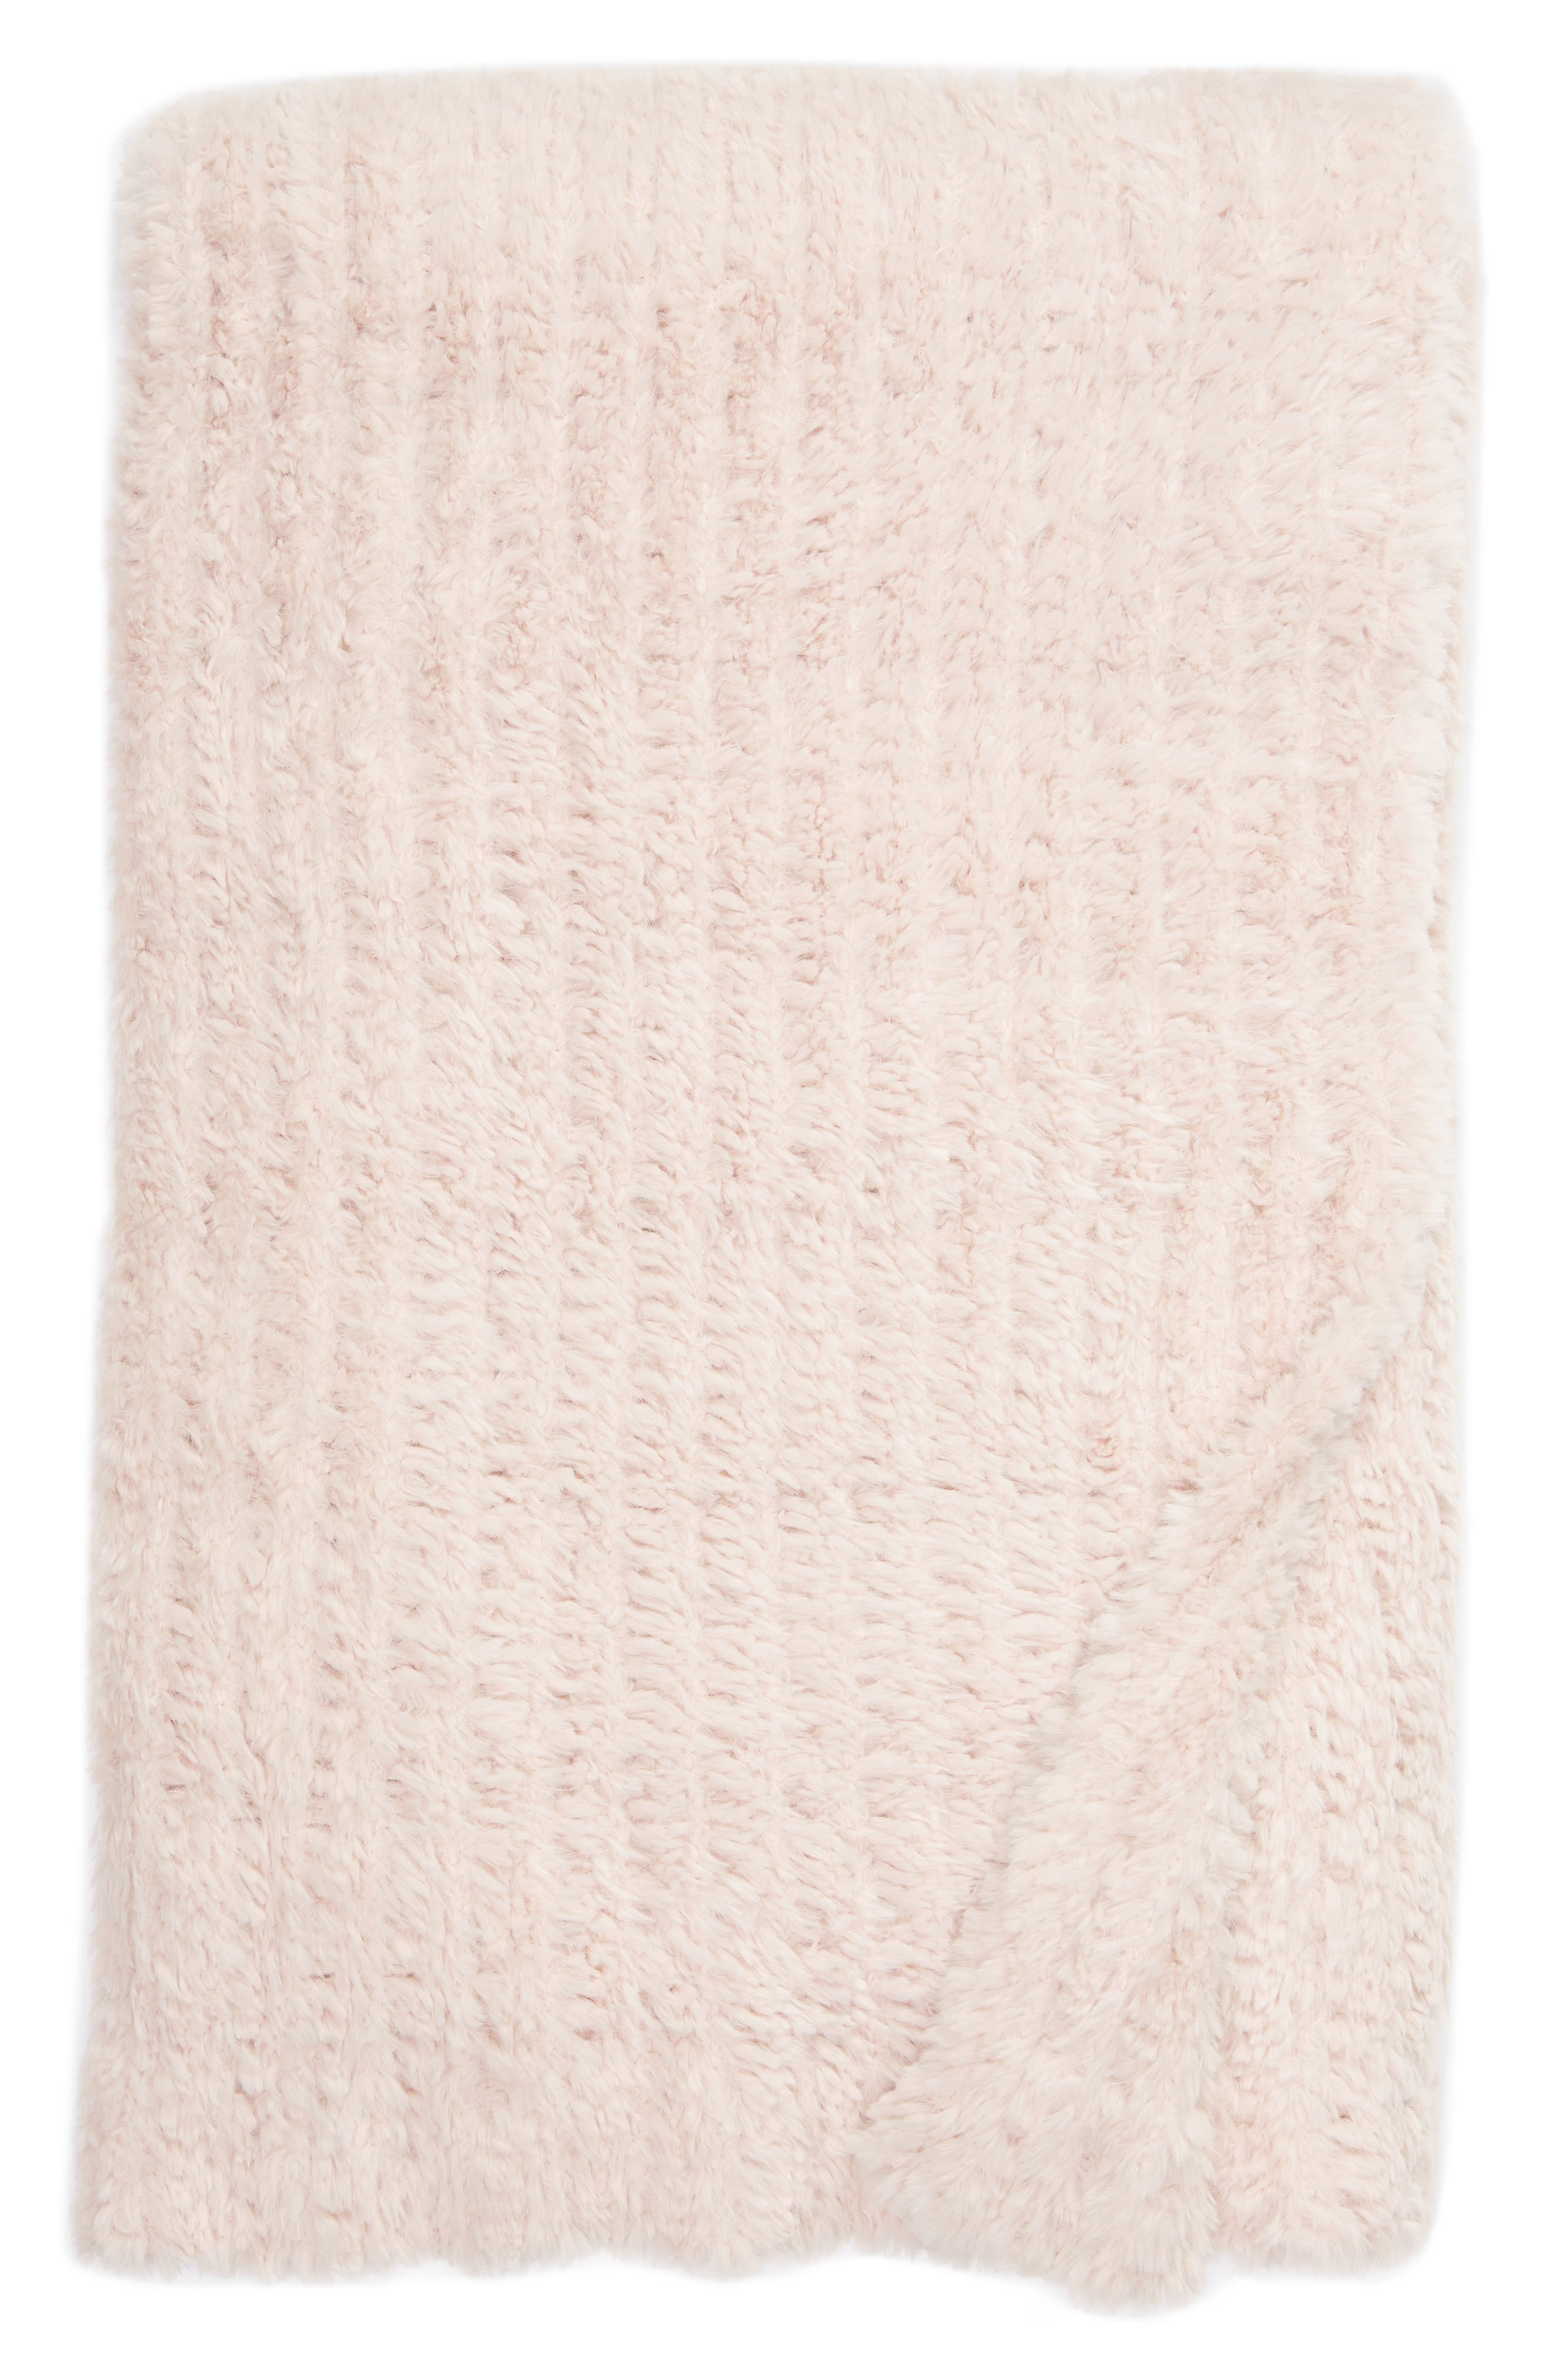 NORDSTROM AT HOME, Lazy Days Faux Fur Throw Blanket, Main thumbnail 1, color, PINK FROSTY